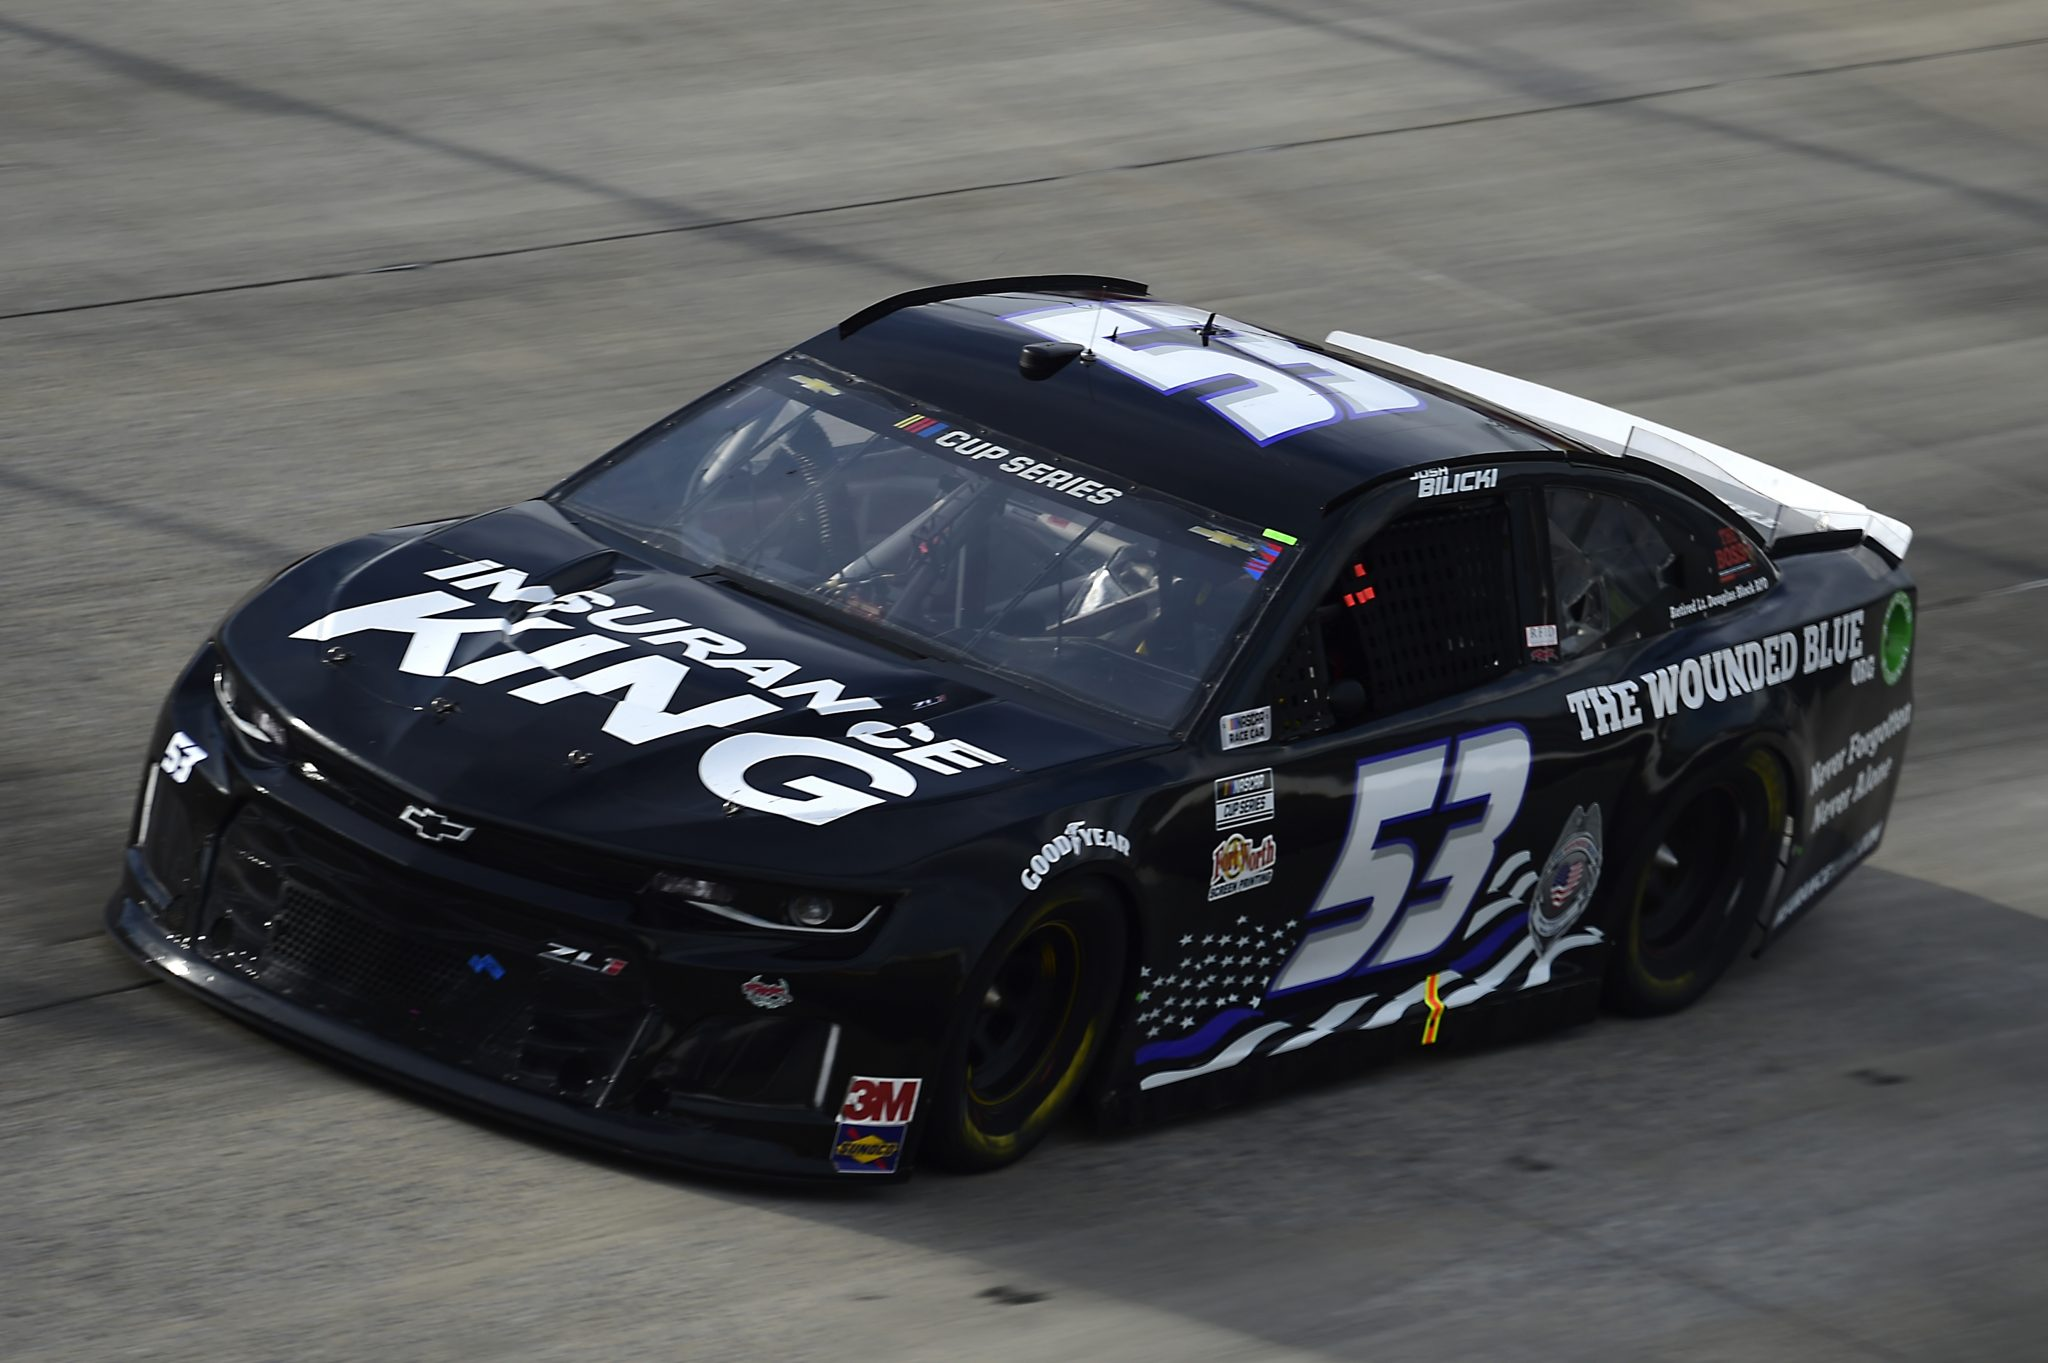 DOVER, DELAWARE - AUGUST 22: Josh Bilicki, driver of the #53 Chevrolet, drives during the NASCAR Cup Series Drydene 311 at Dover International Speedway on August 22, 2020 in Dover, Delaware. (Photo by Jared C. Tilton/Getty Images) | Getty Images